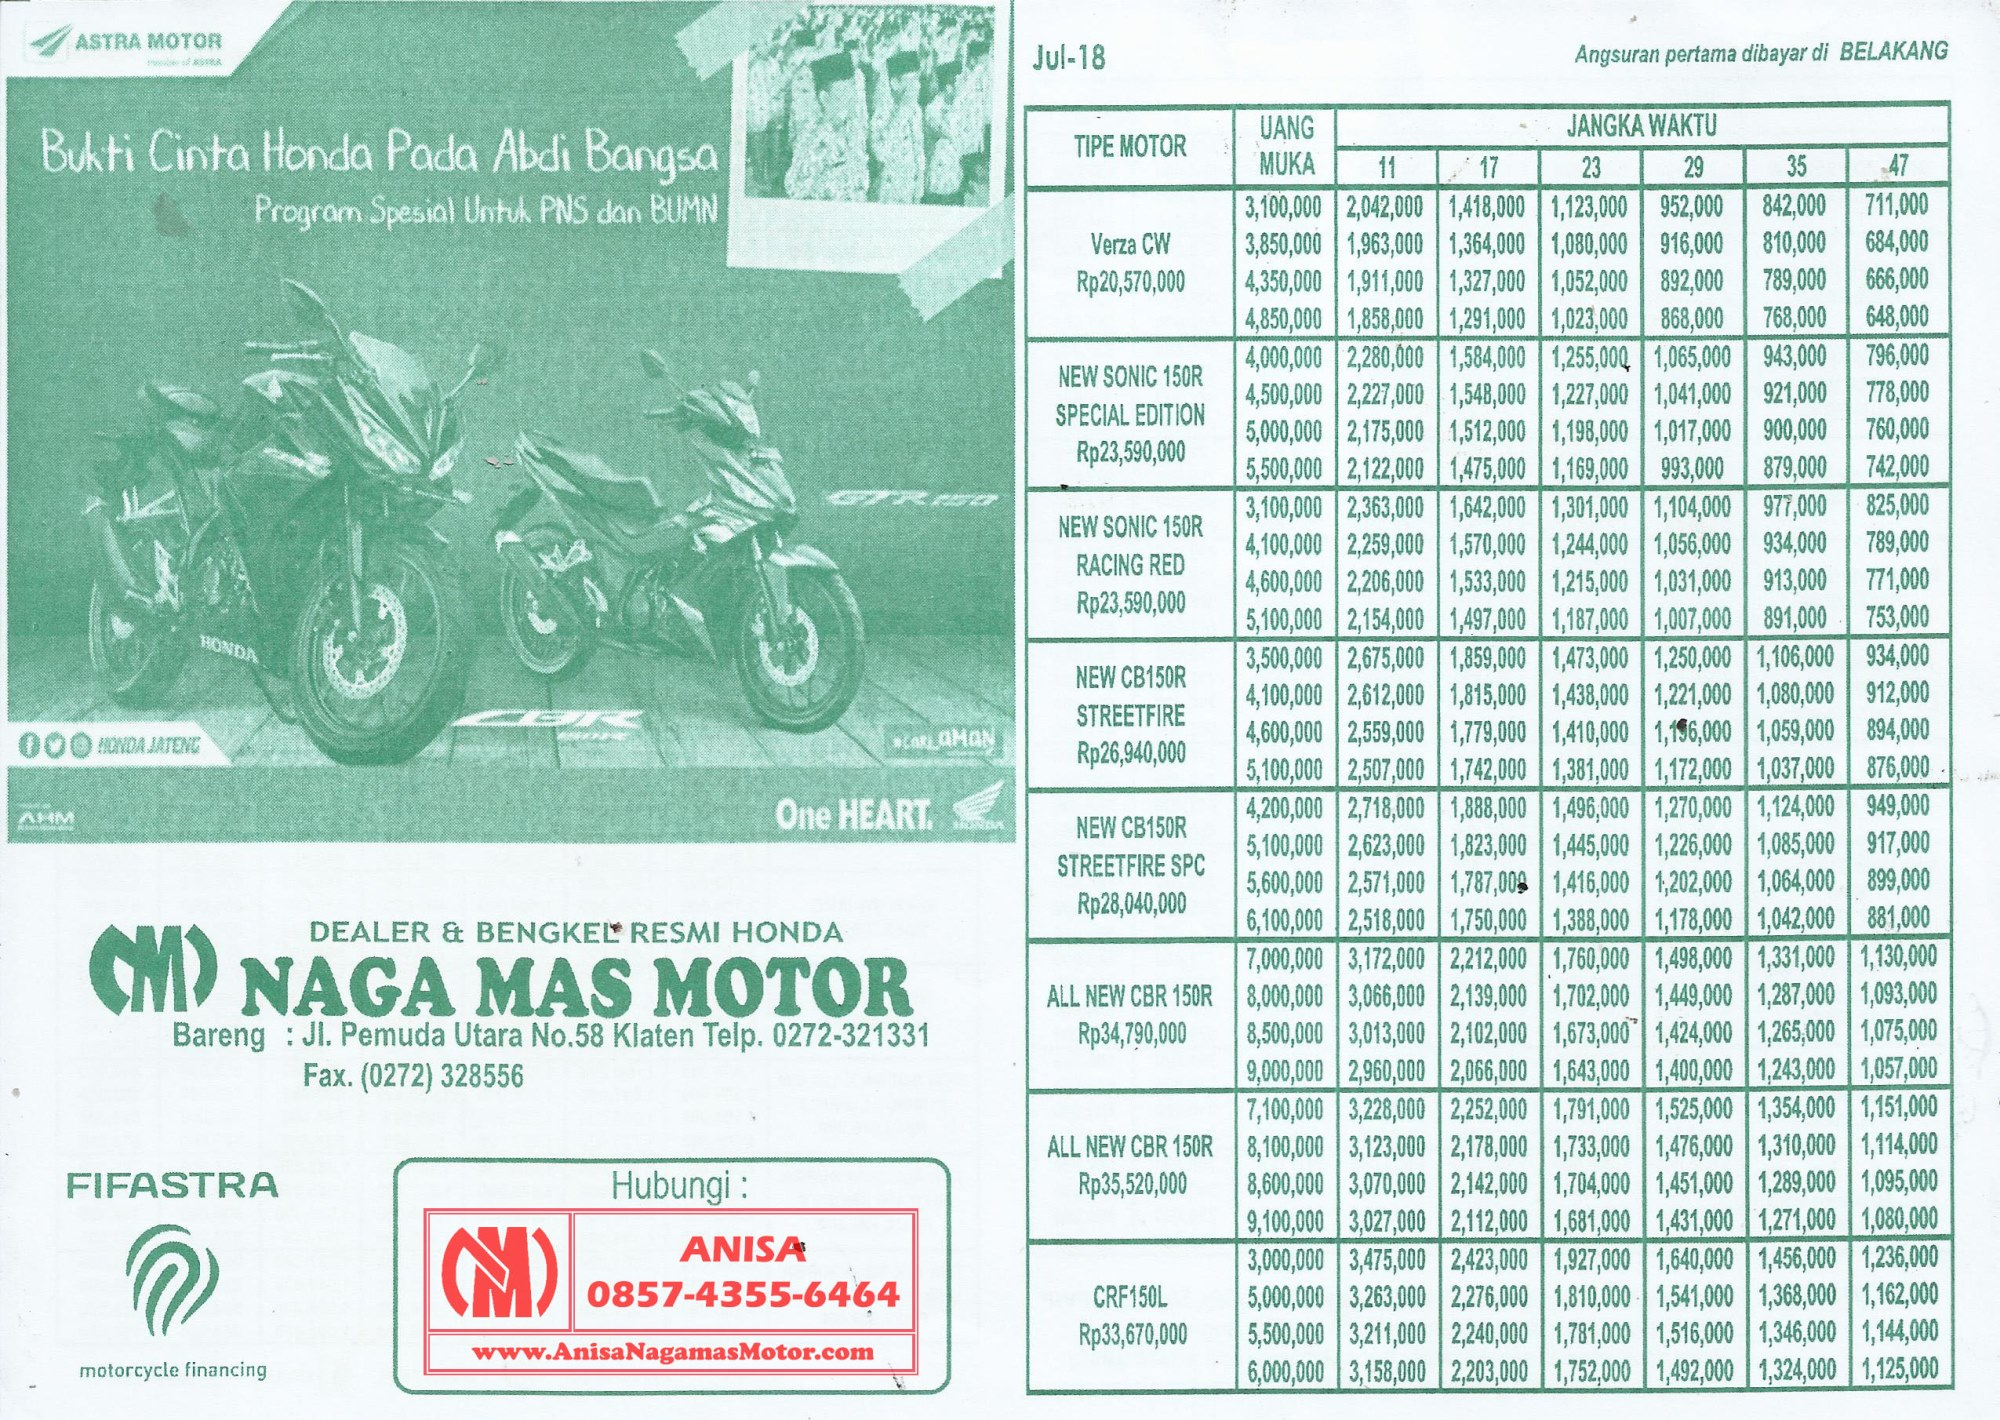 Kredit Motor Honda Beat 2017 All New Sporty Esp Cbs Garage Black Brebes Brosur Terbaru 2018 Dealer Nagamas Klaten